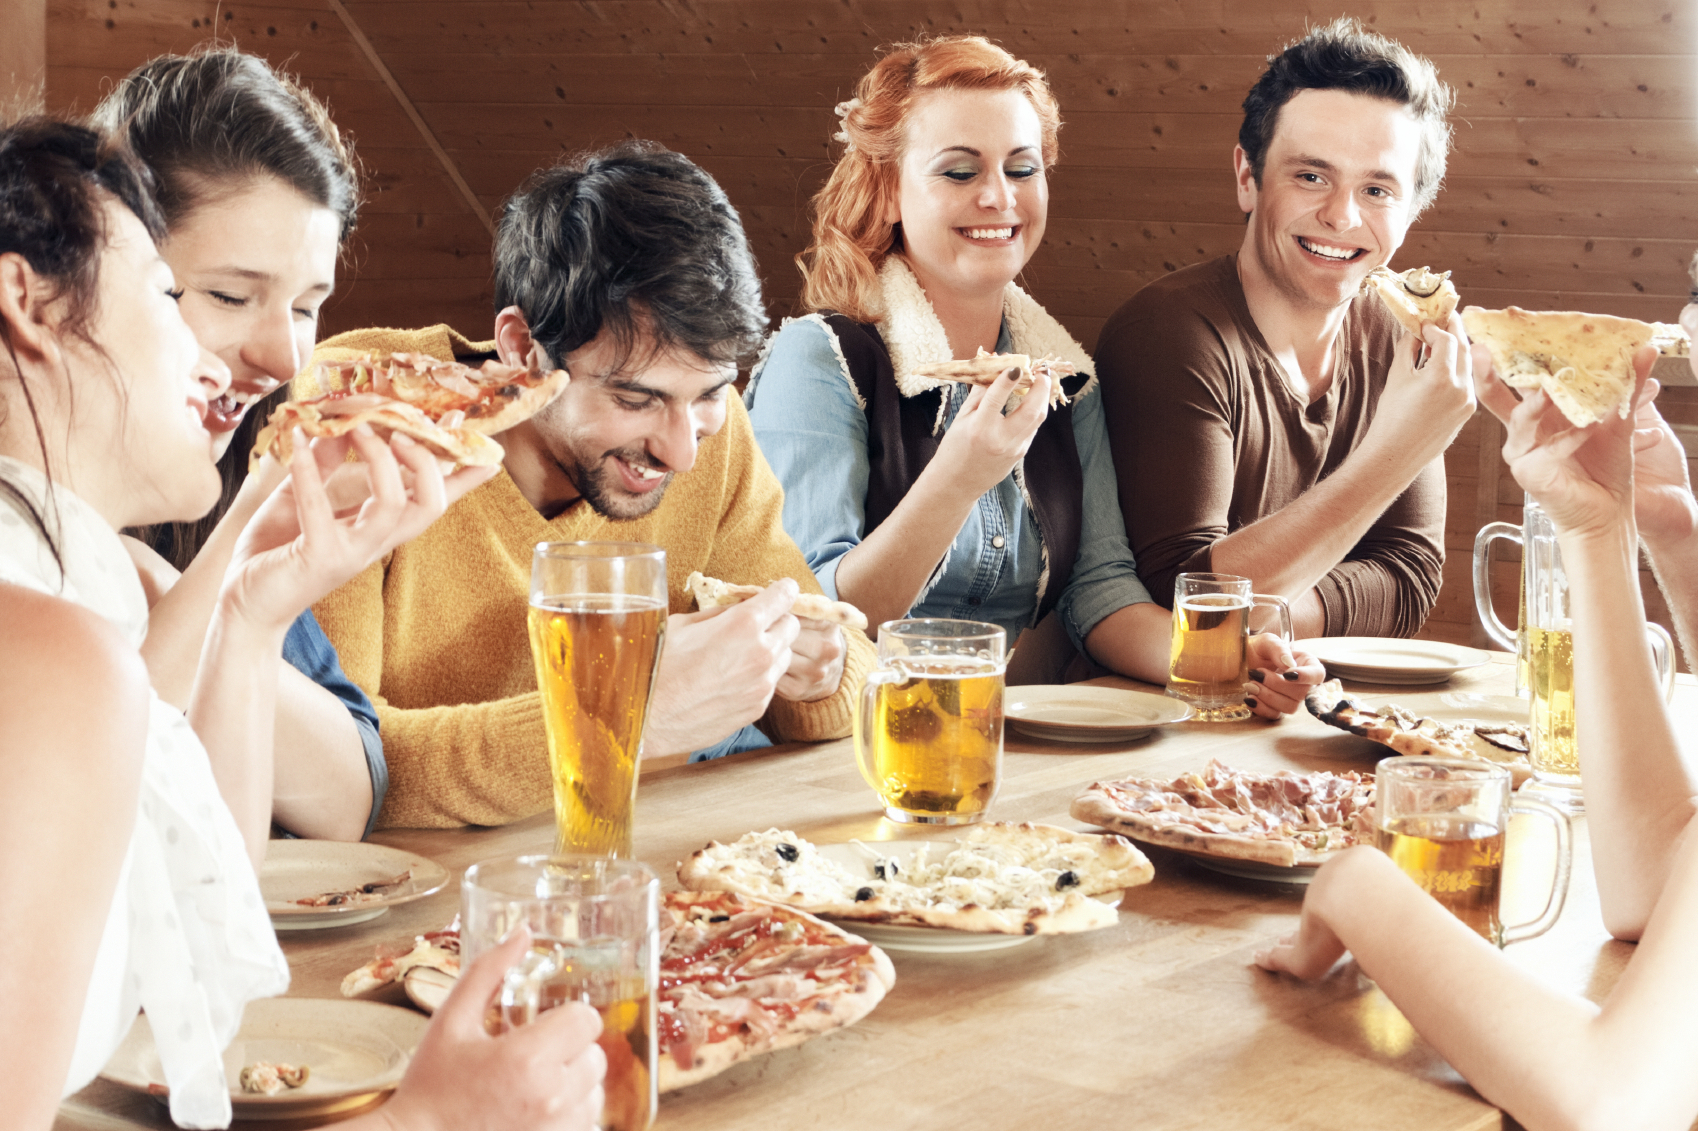 Why Dining in Groups Changes Our Eating Habits